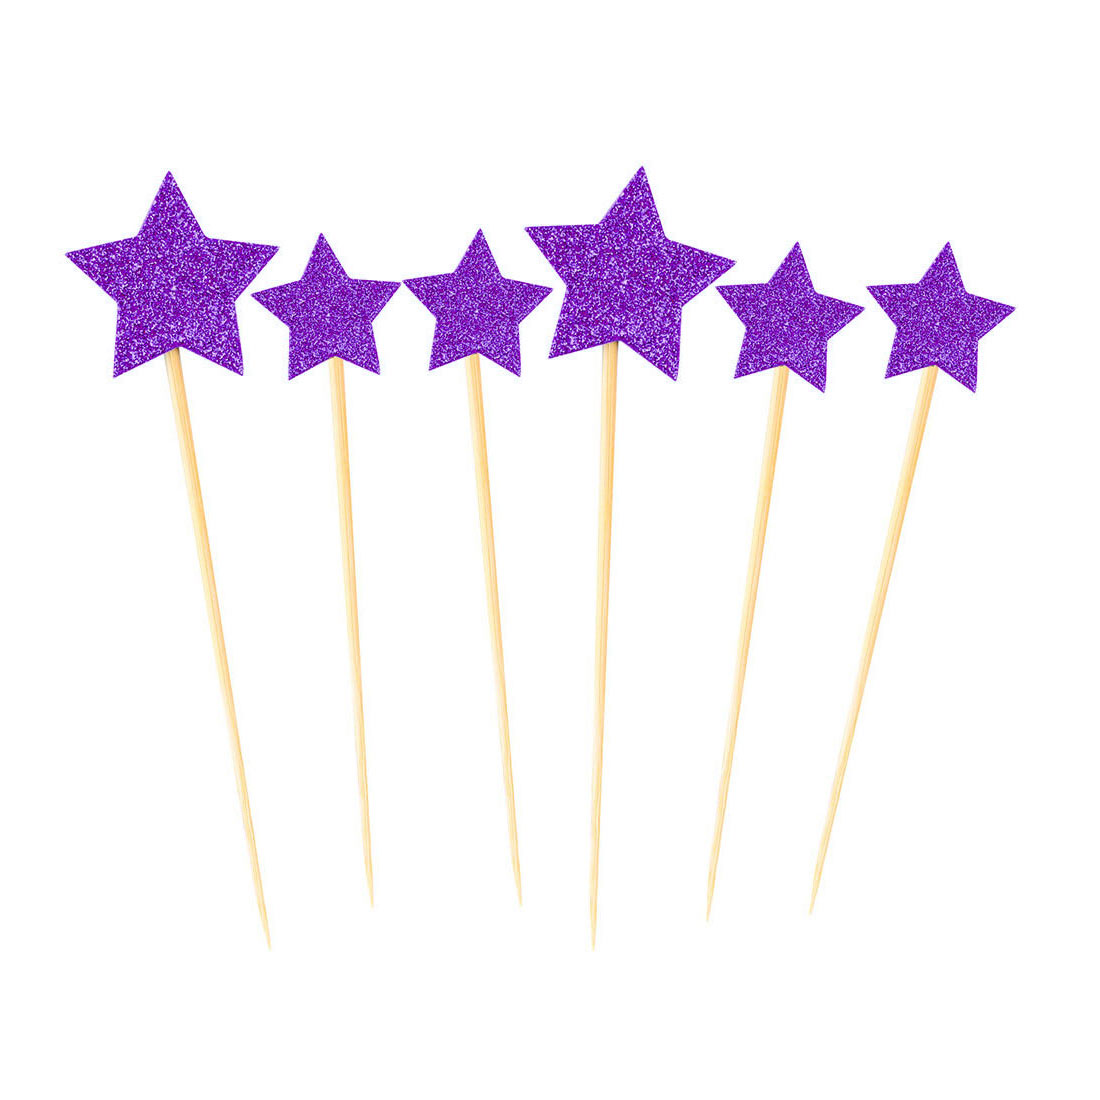 Cupcake Star Shaped Glittery Toothpicks Craft Picks Topper Purple 6 in 1